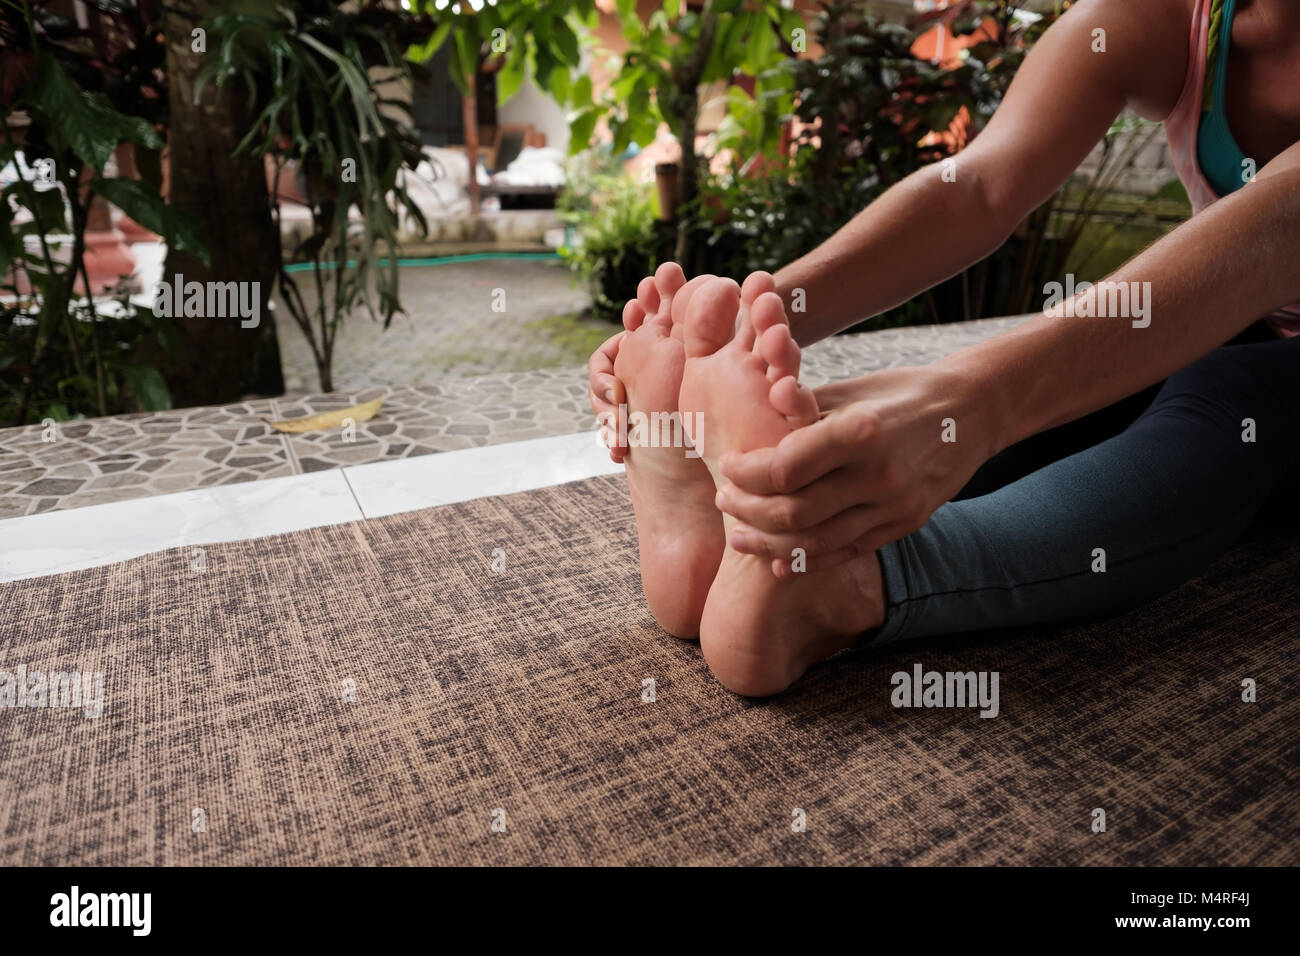 Detail of caucasian woman doing yoga asana exercises. Girl do sitting forward bend pose. Healthy lifestyle outside - Stock Image